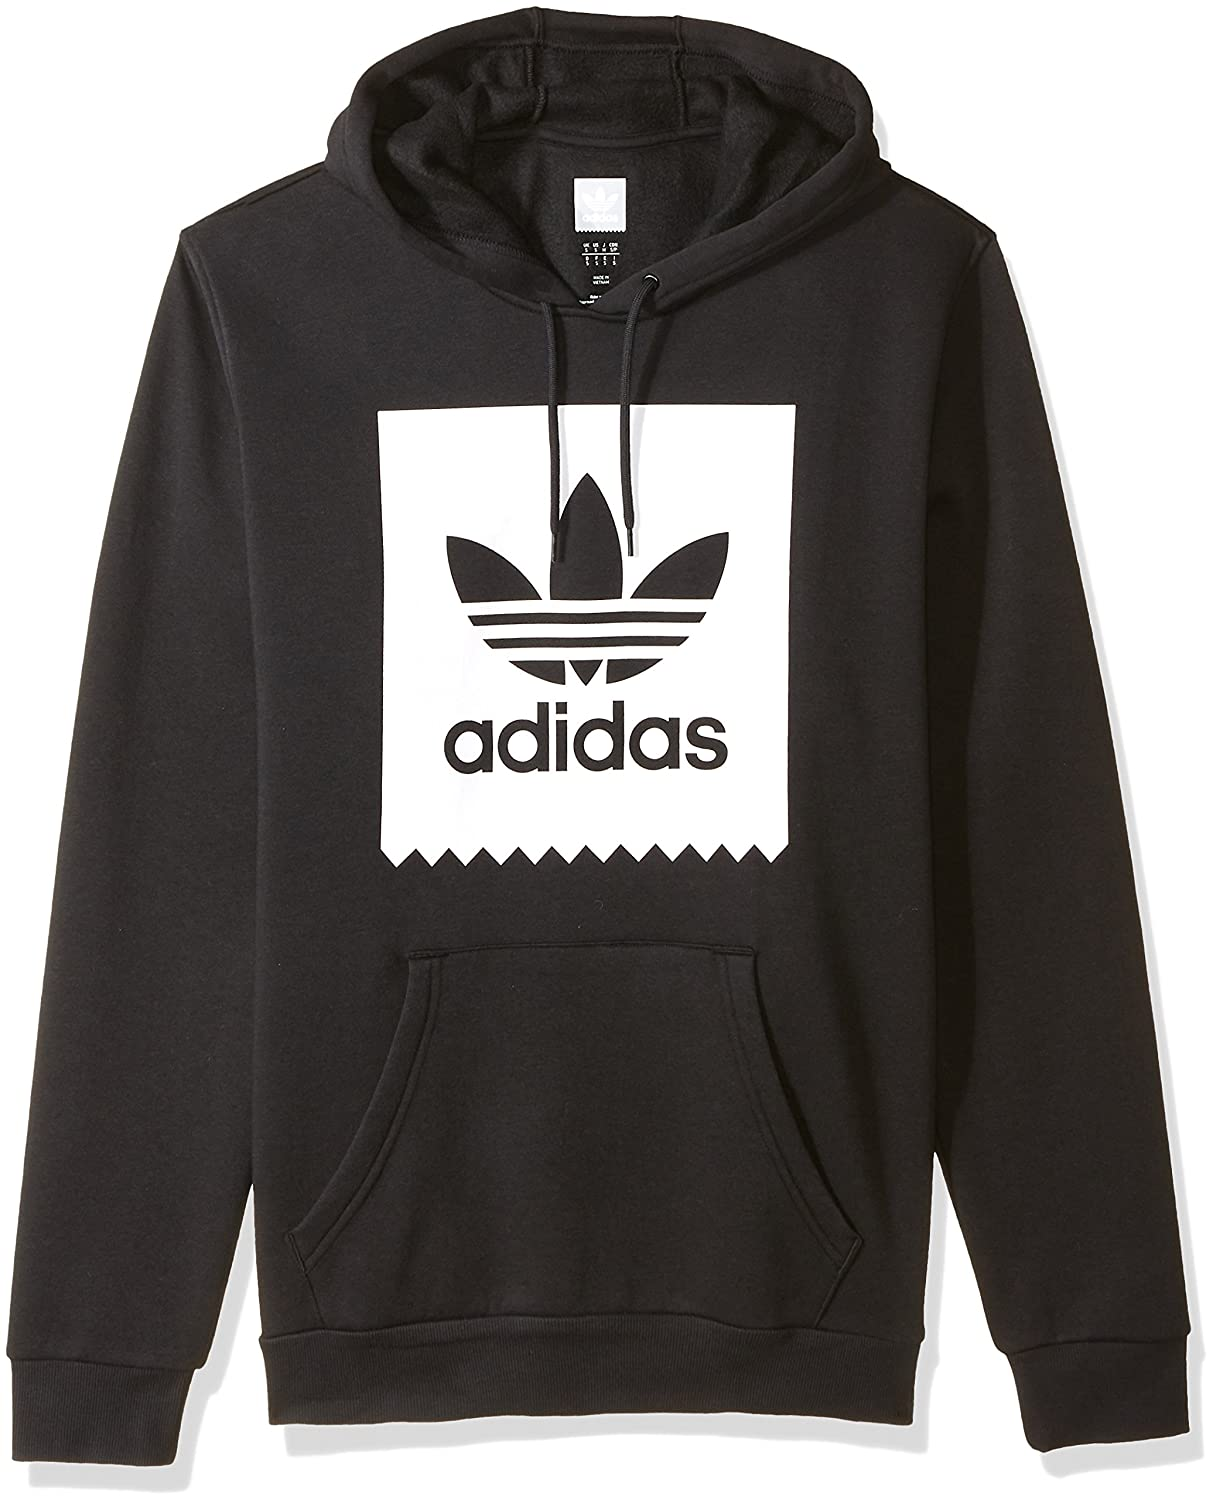 adidas Originals Men's Solid Bb Hoodie S18ASM2526